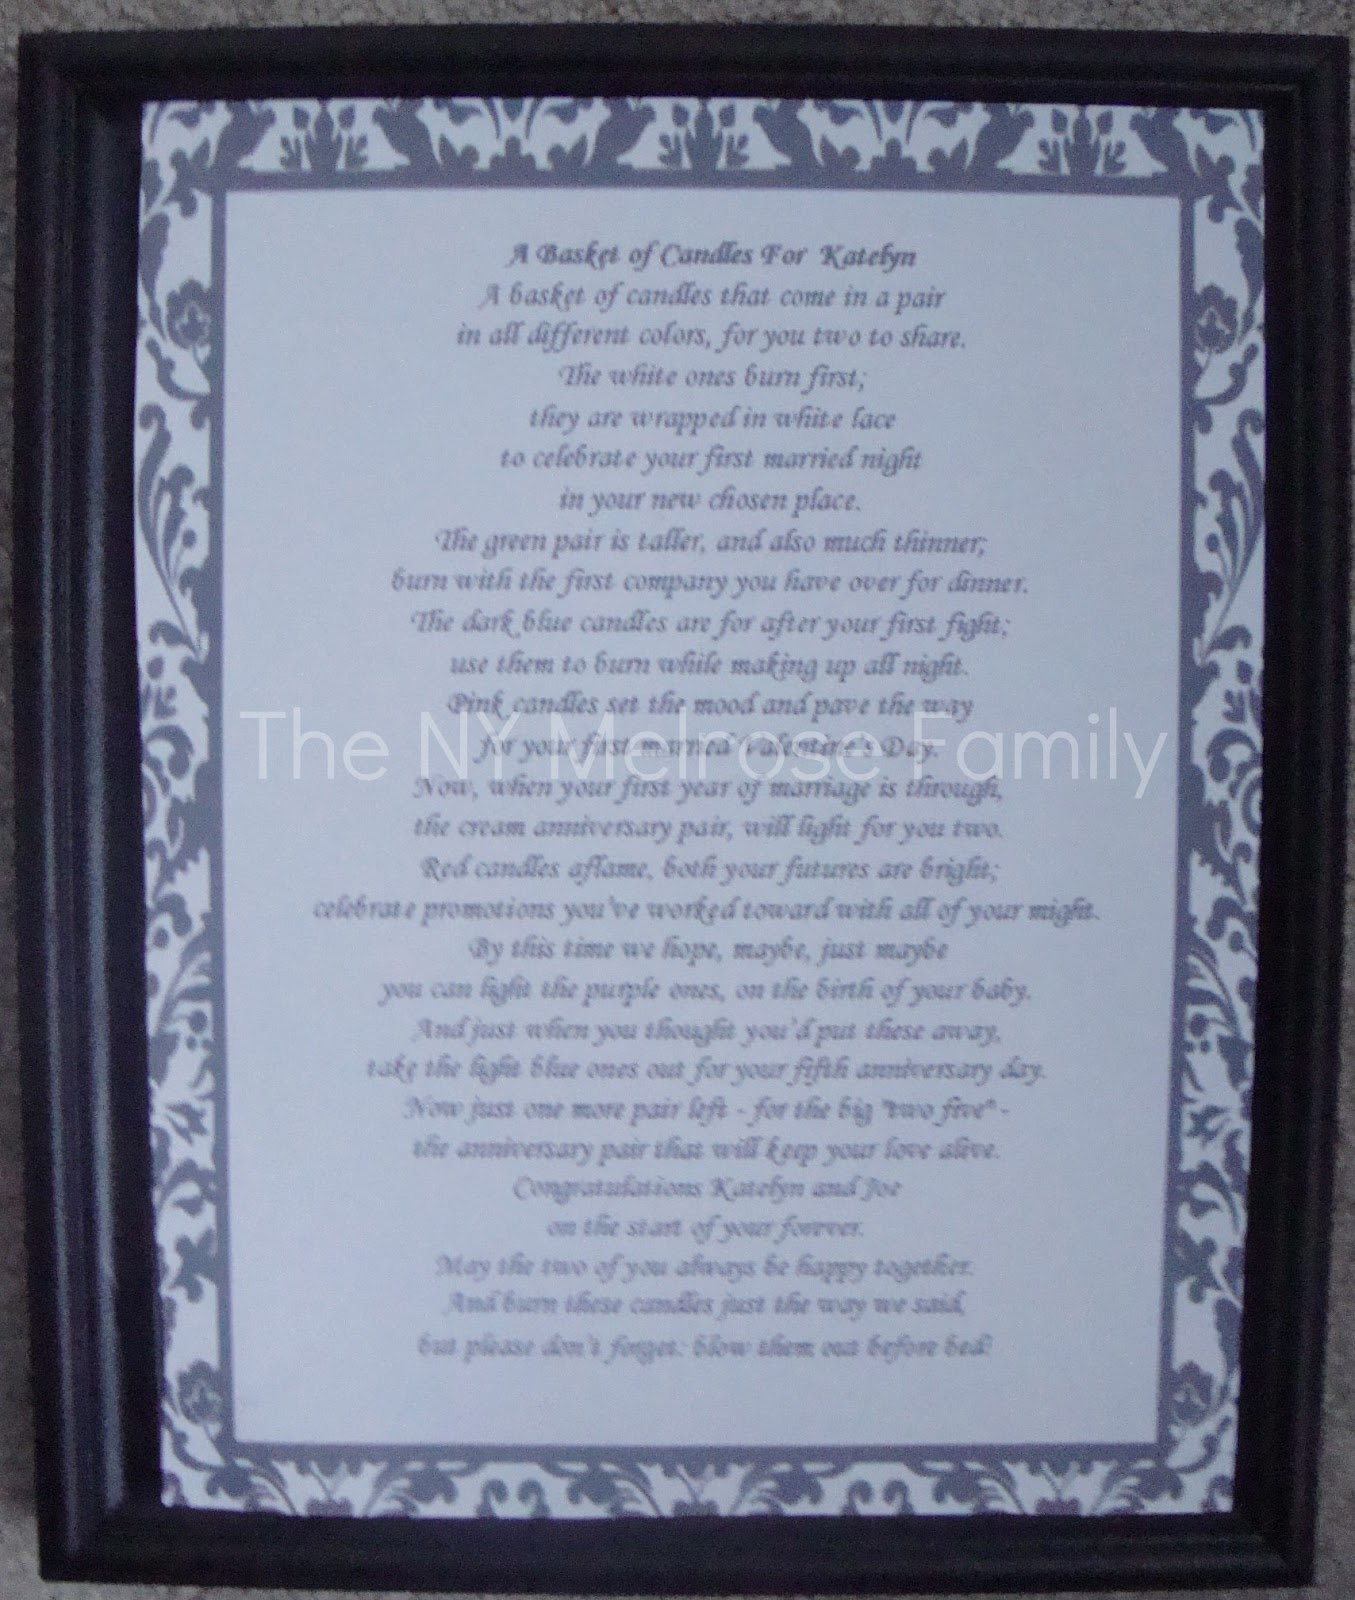 Donot Want A Wedding Gift Poem : Bridal Shower Poems And Quotes. QuotesGram